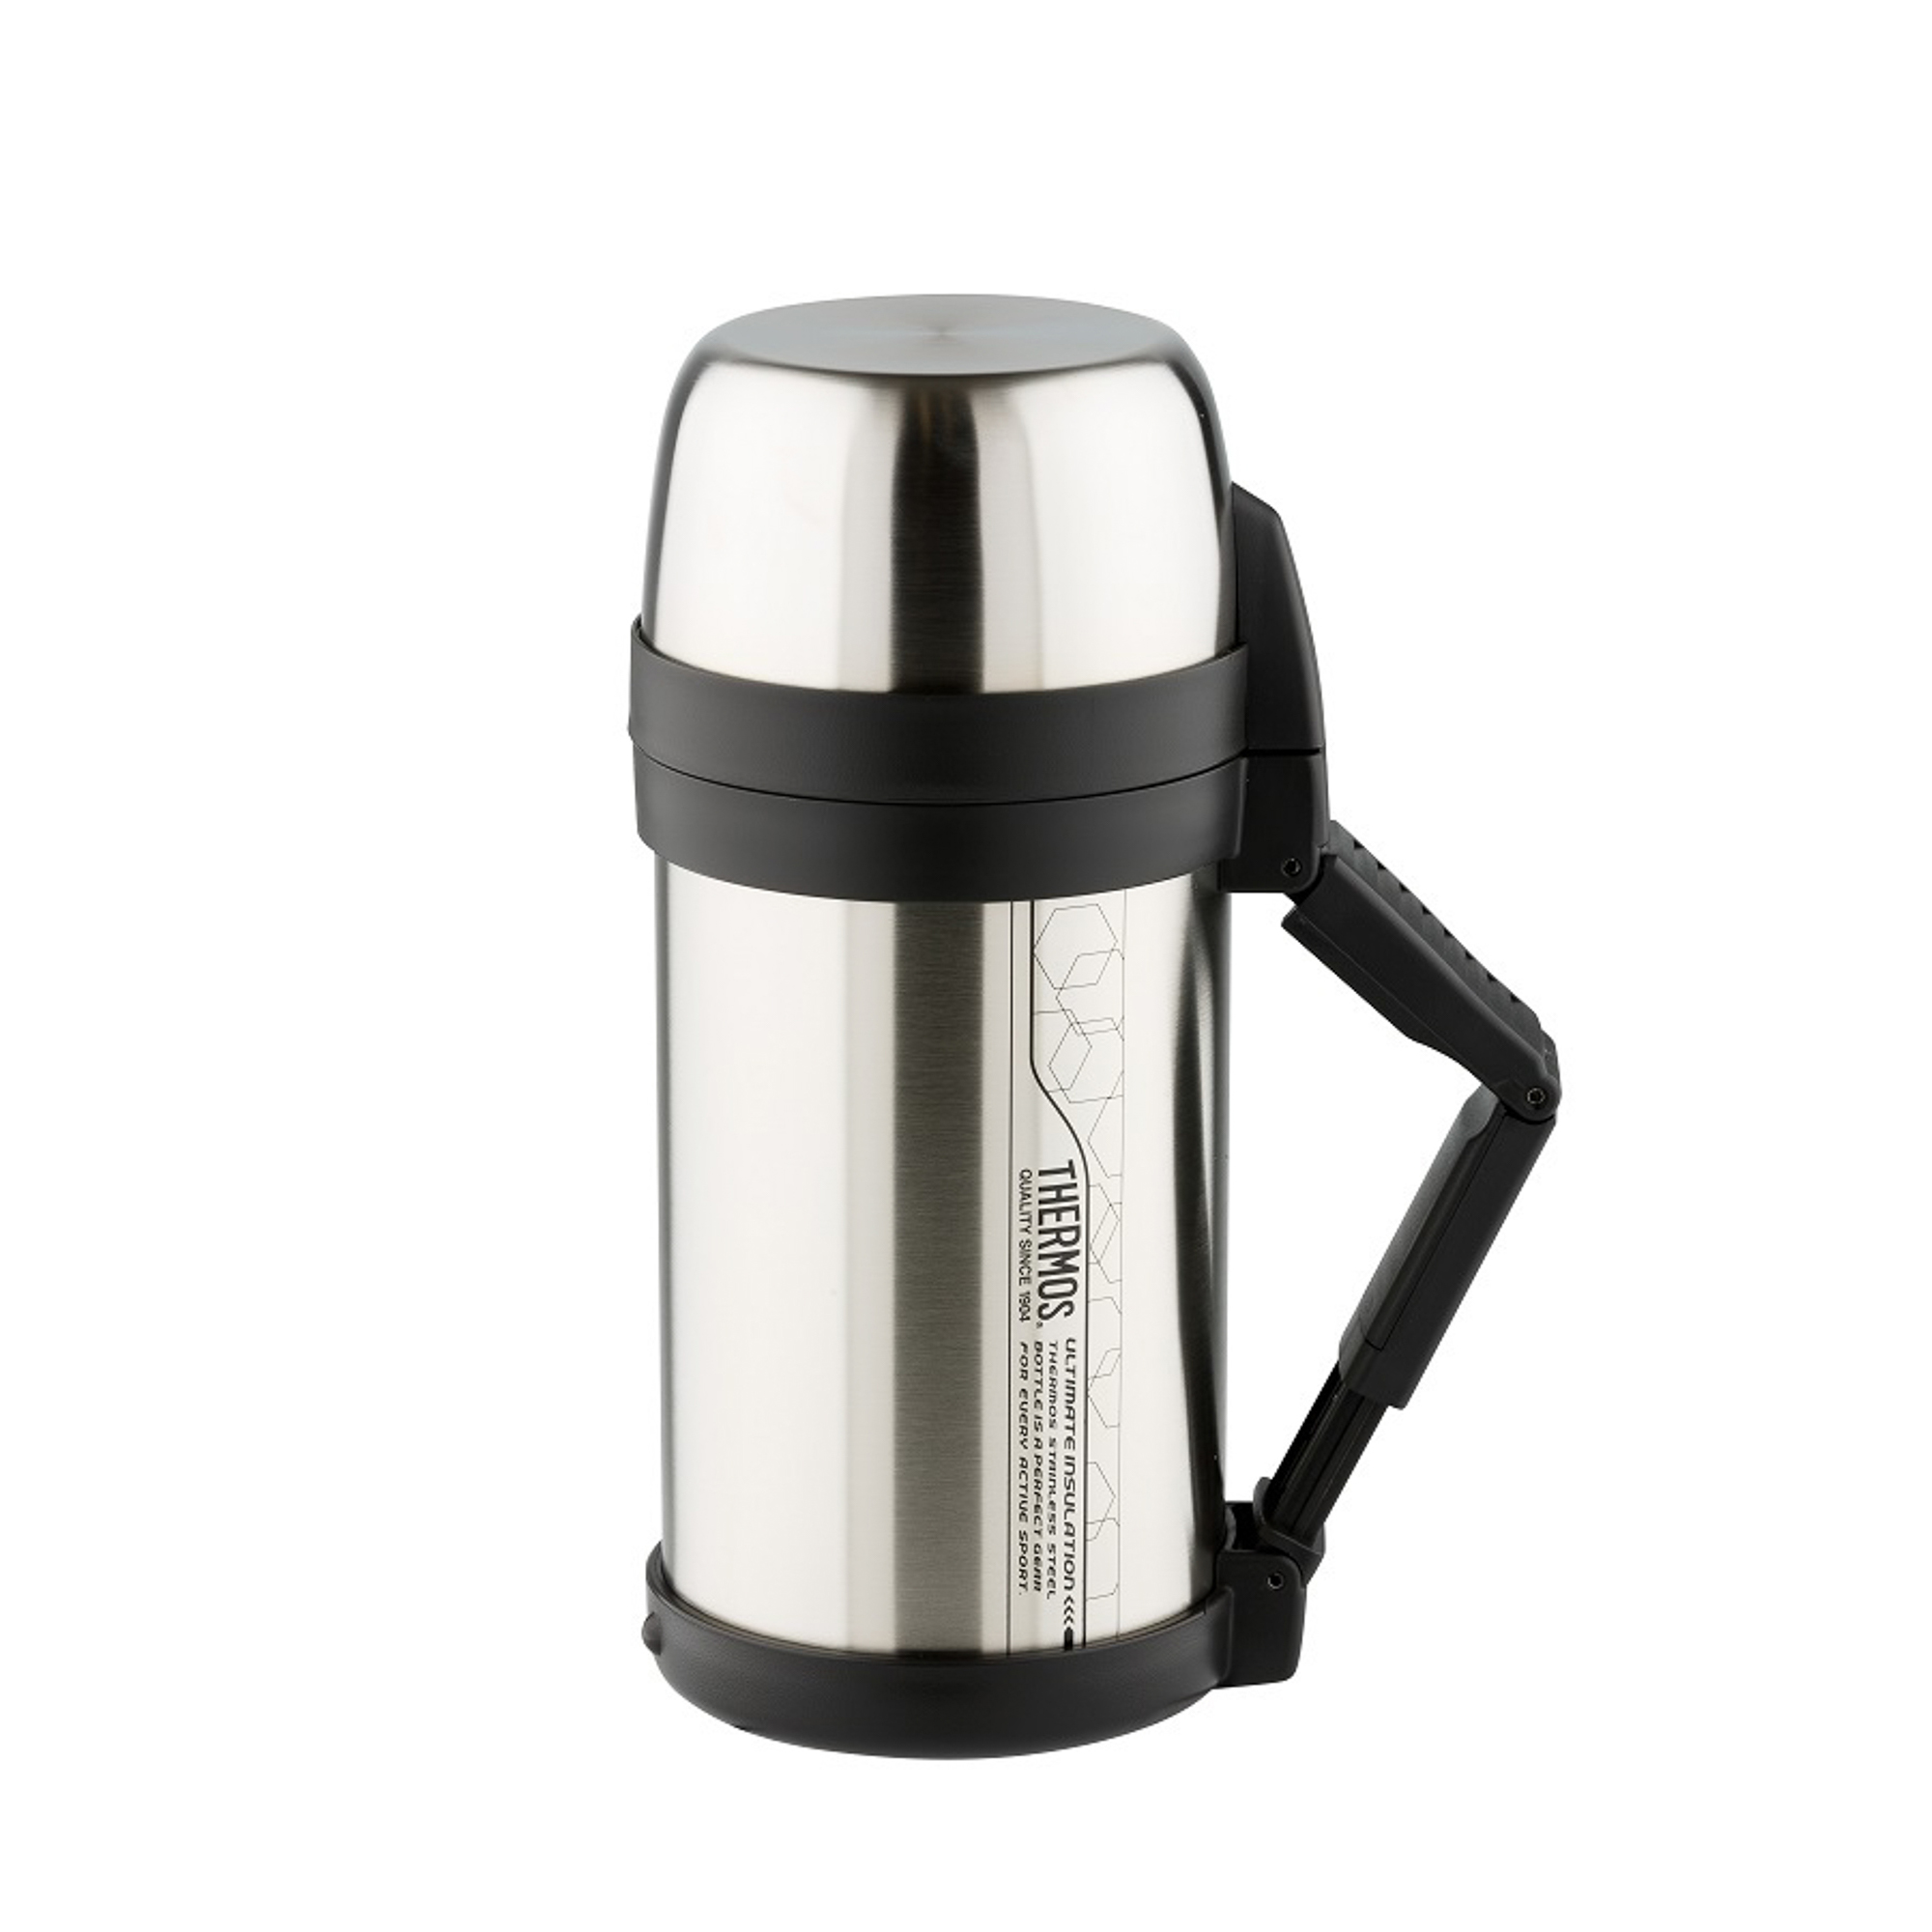 Термос Thermos fdh stainless steel vacuum flask 2.0л